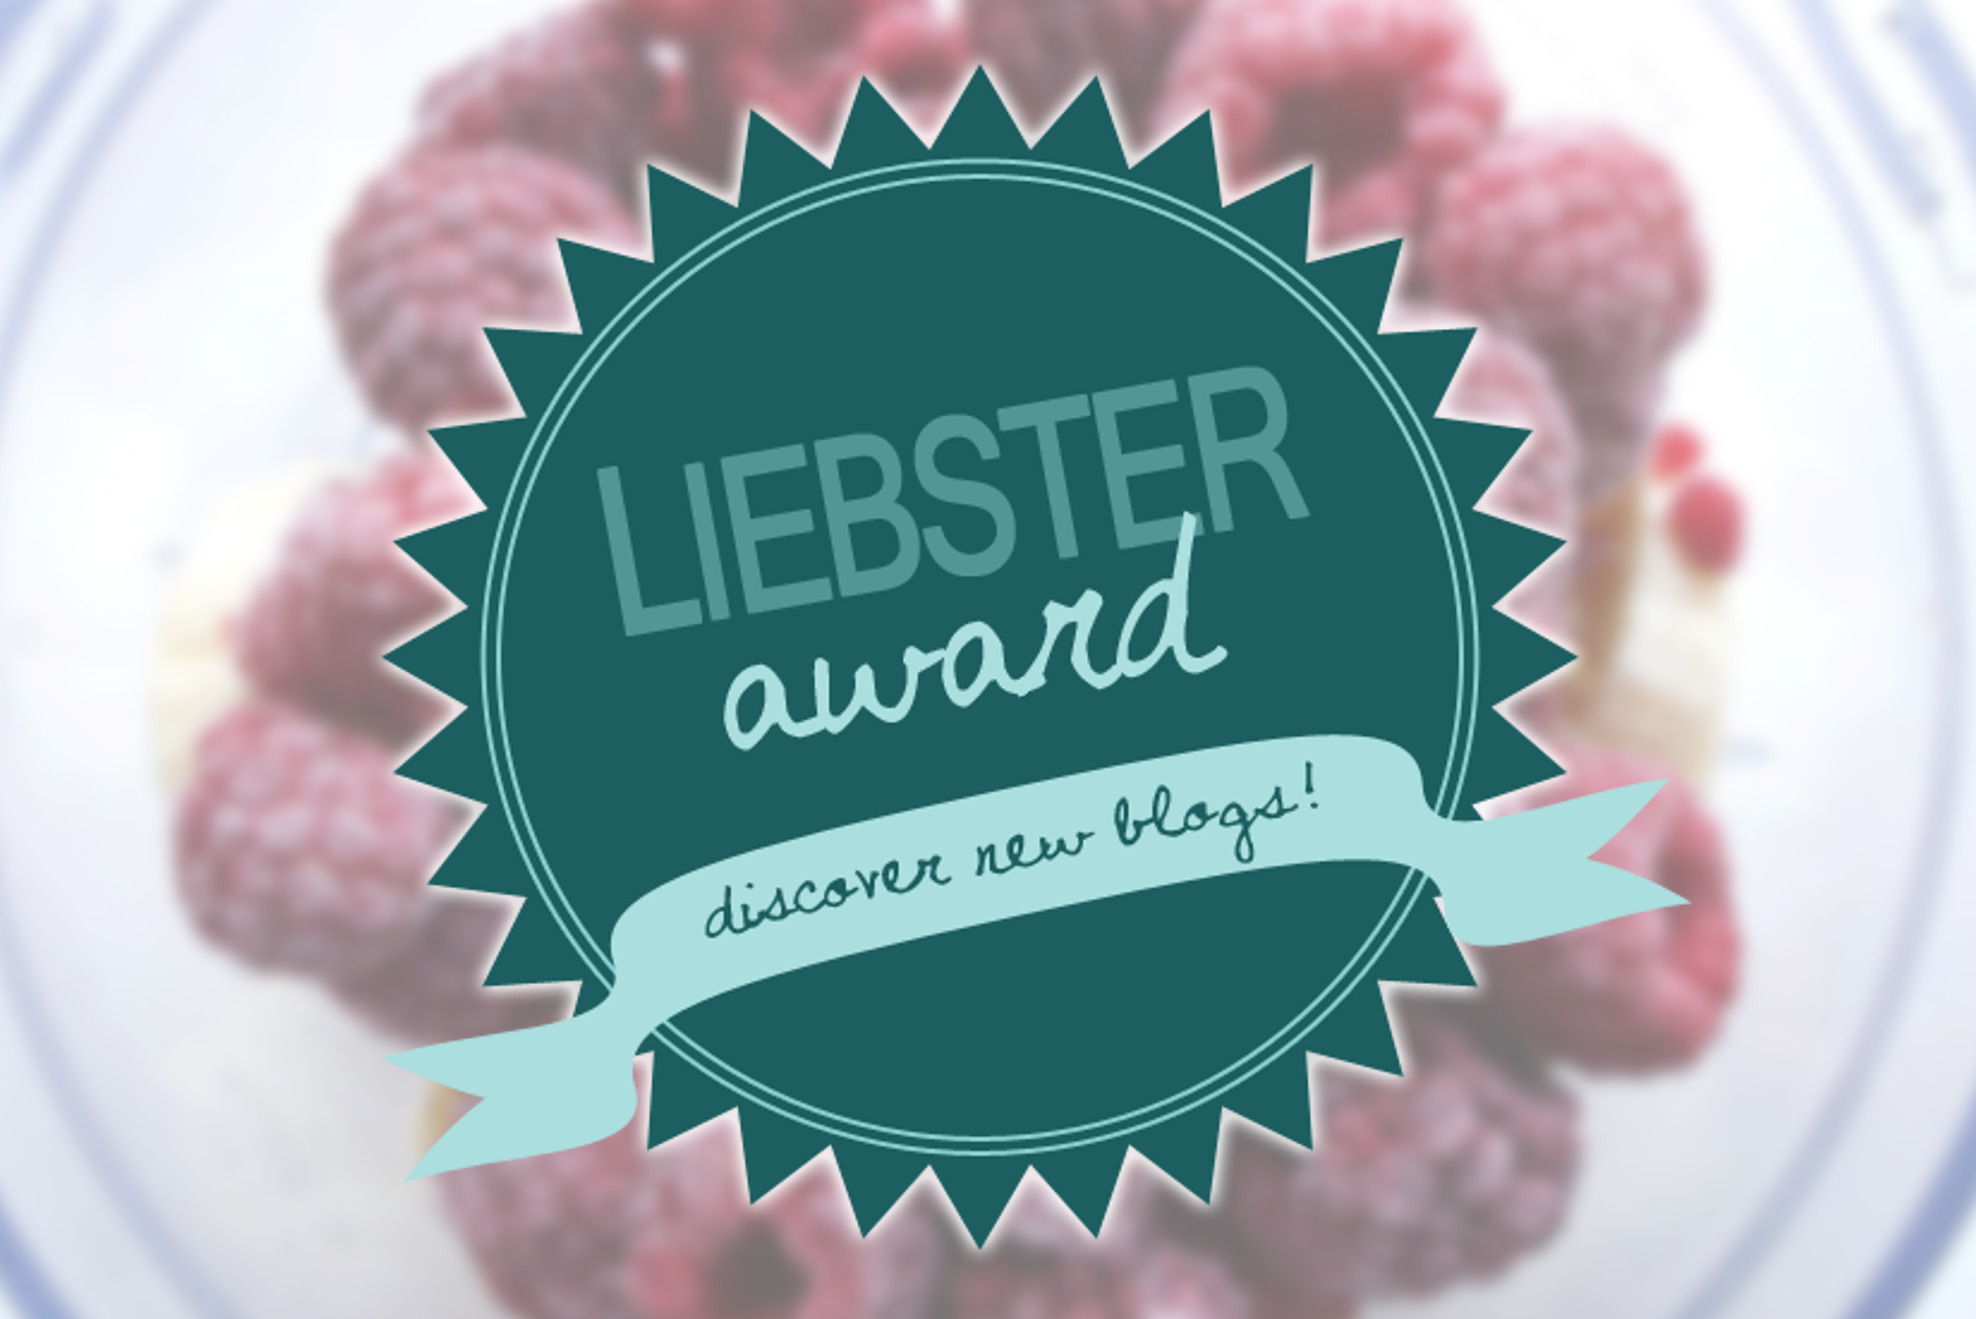 Liebster award & personal